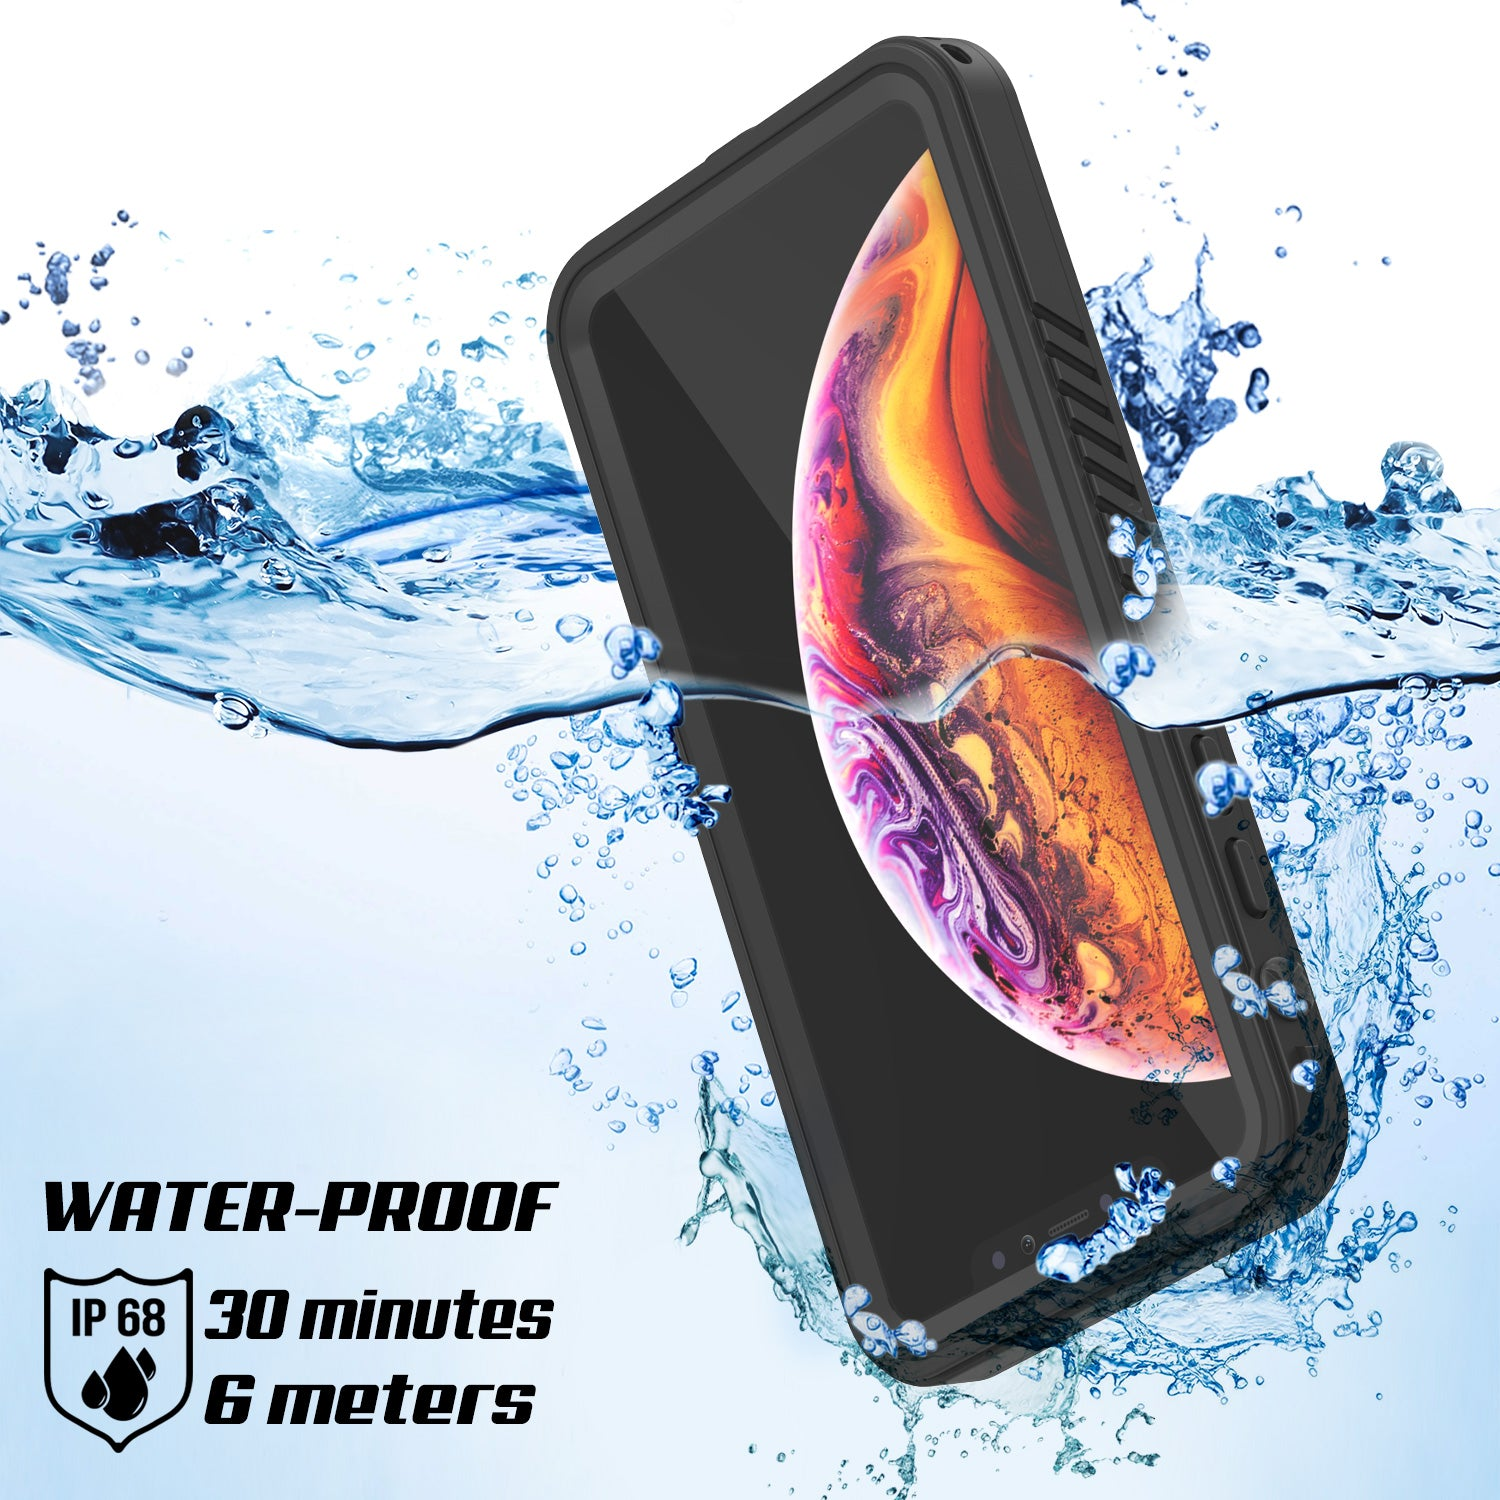 iPhone XR Waterproof Case, Punkcase [Extreme Series] Armor Cover W/ Built In Screen Protector [Black]